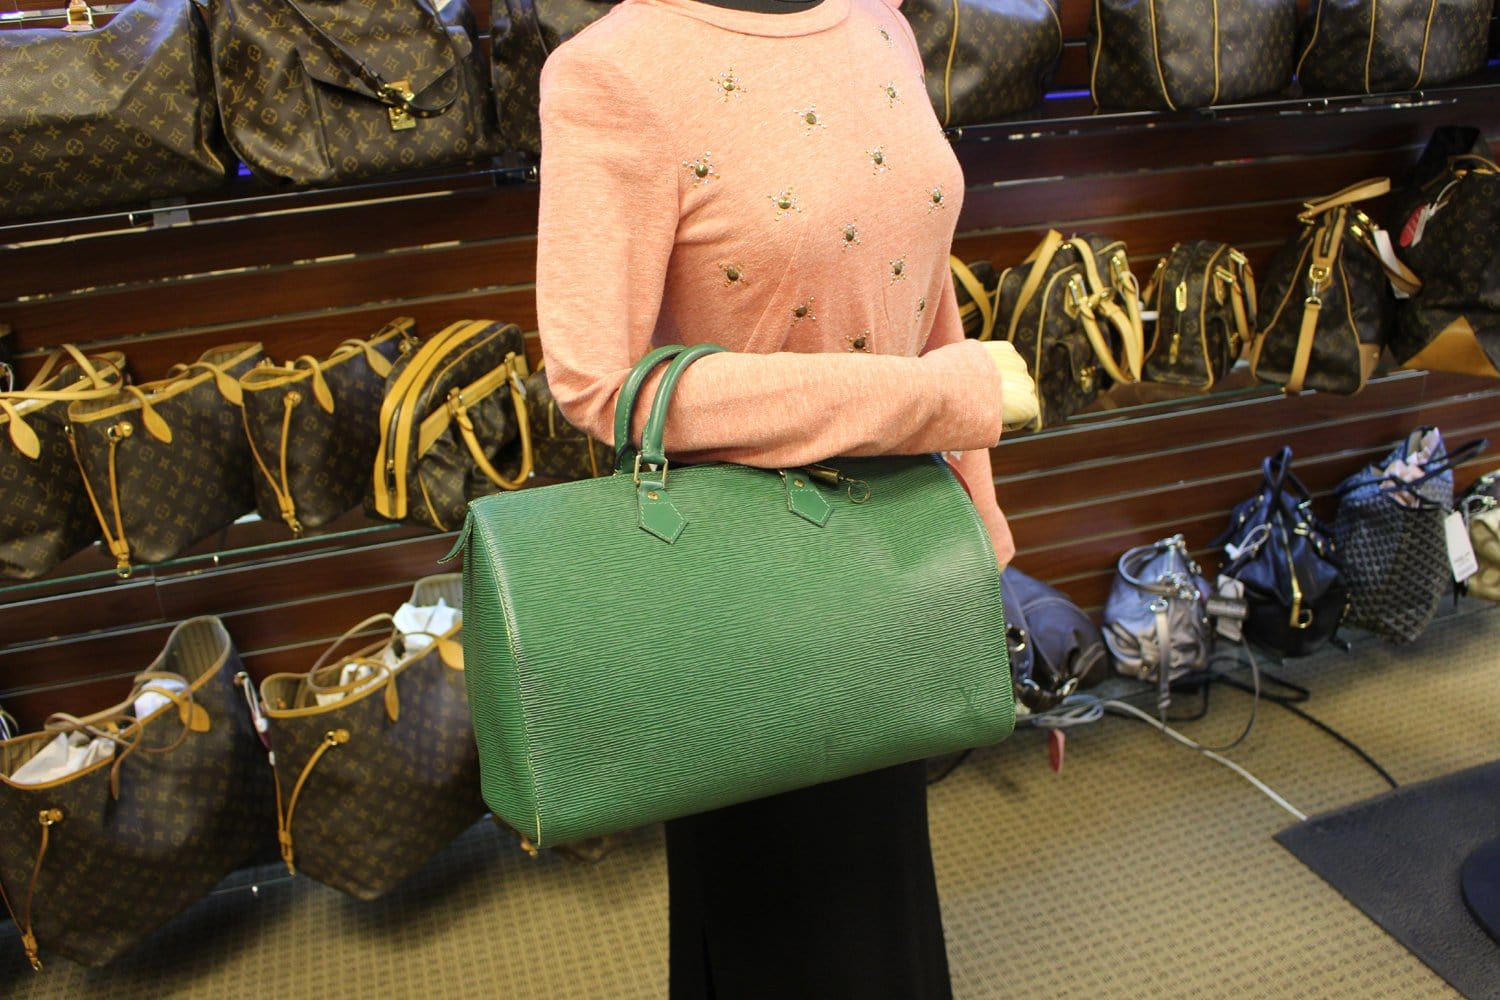 feb6ed3790 LOUIS VUITTON Epi Leather Green Speedy 35 Satchel Bag - 30% Off